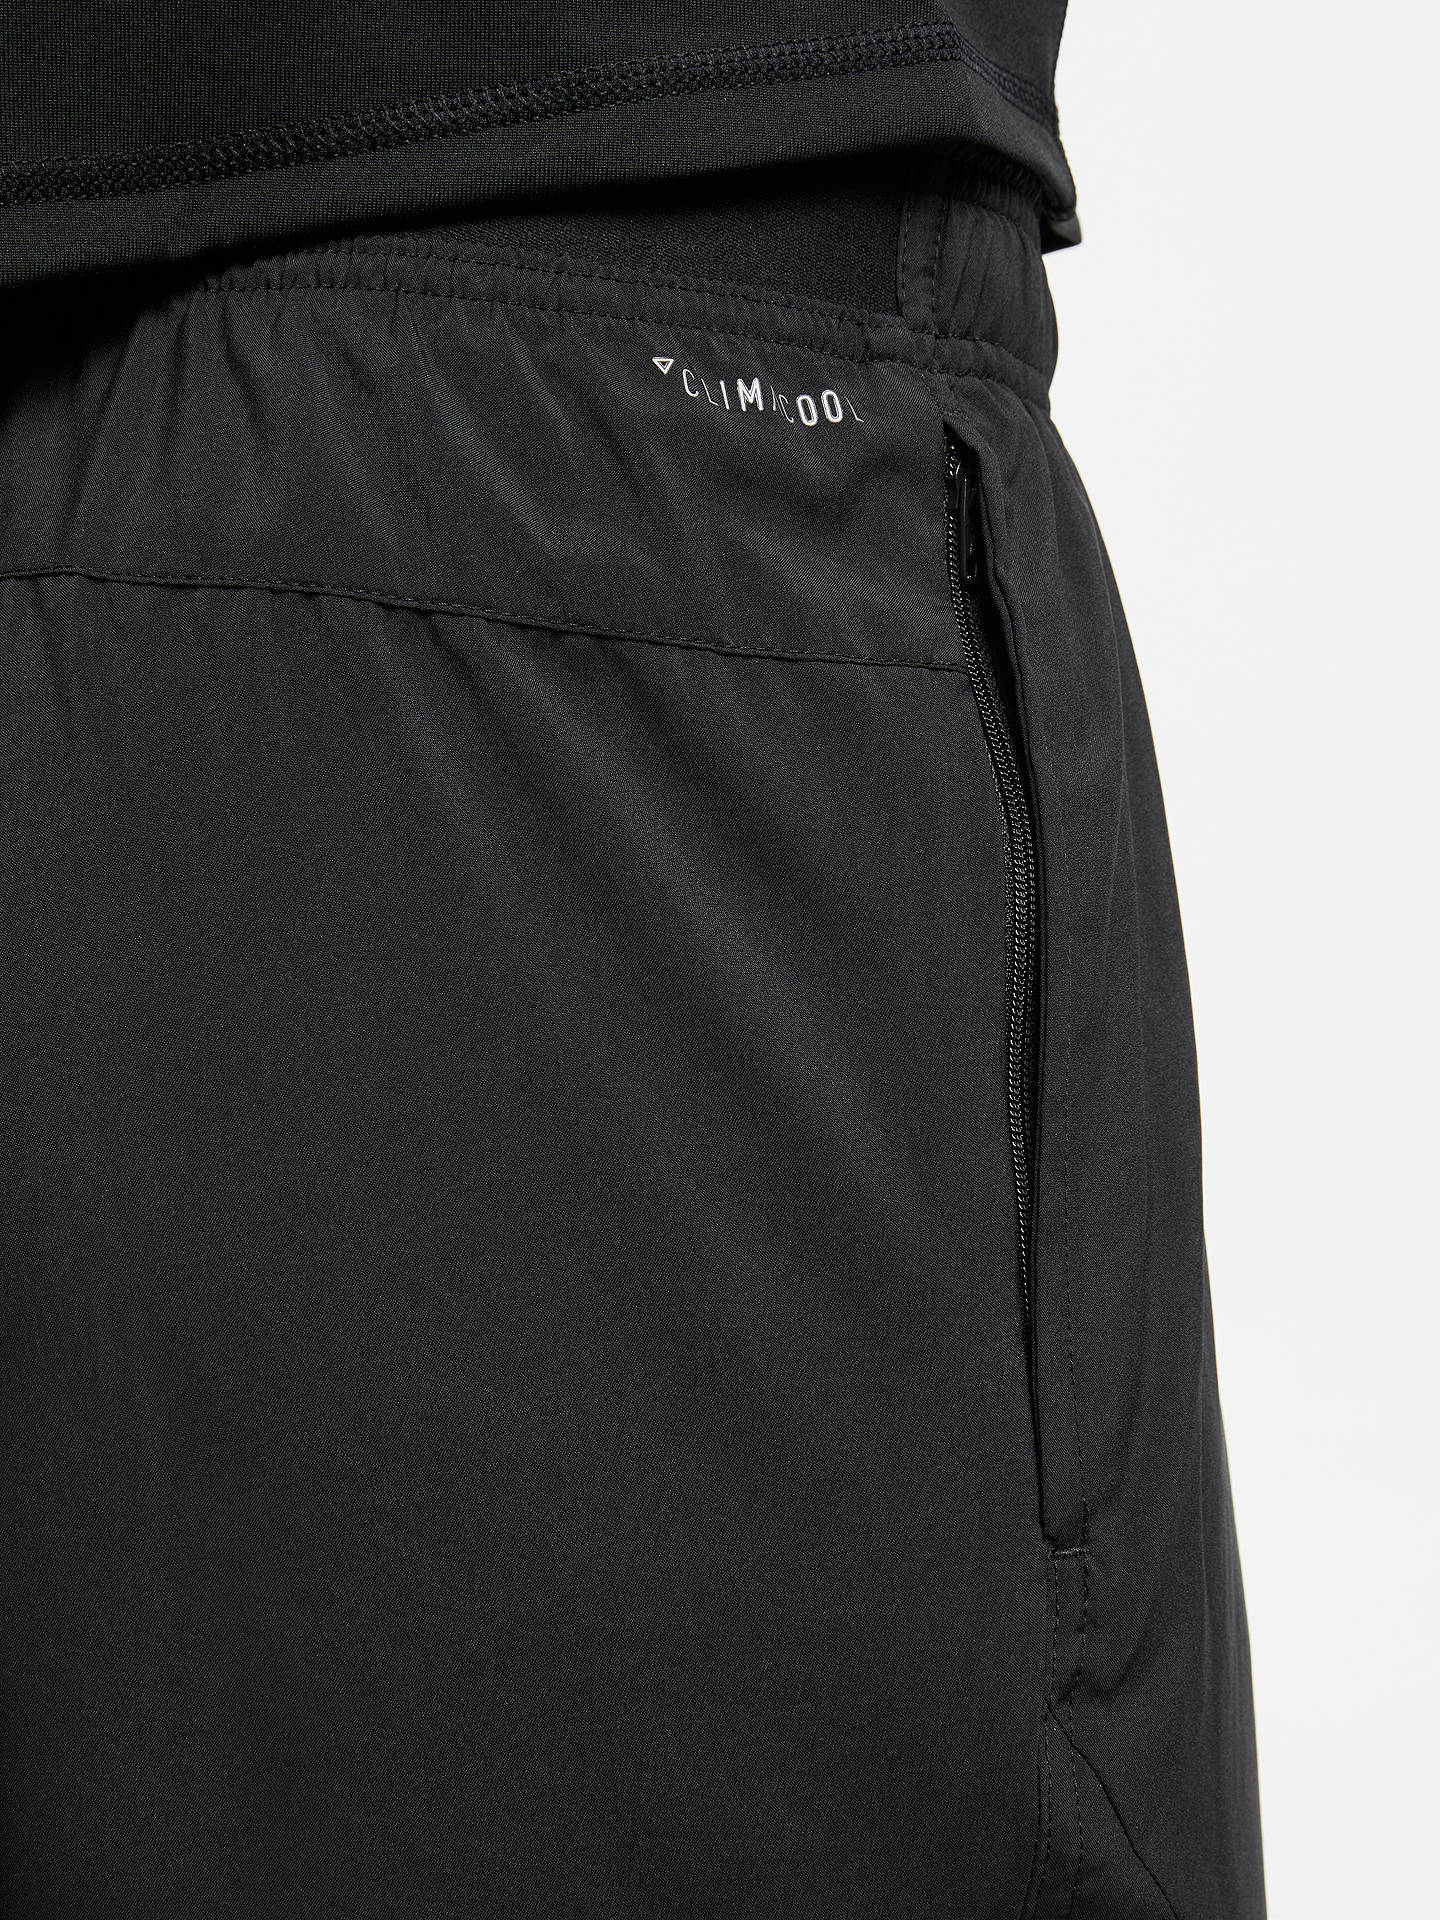 adidas Mens New Zealand Rugby Shorts Pants Trousers Bottoms Zip ClimaCool